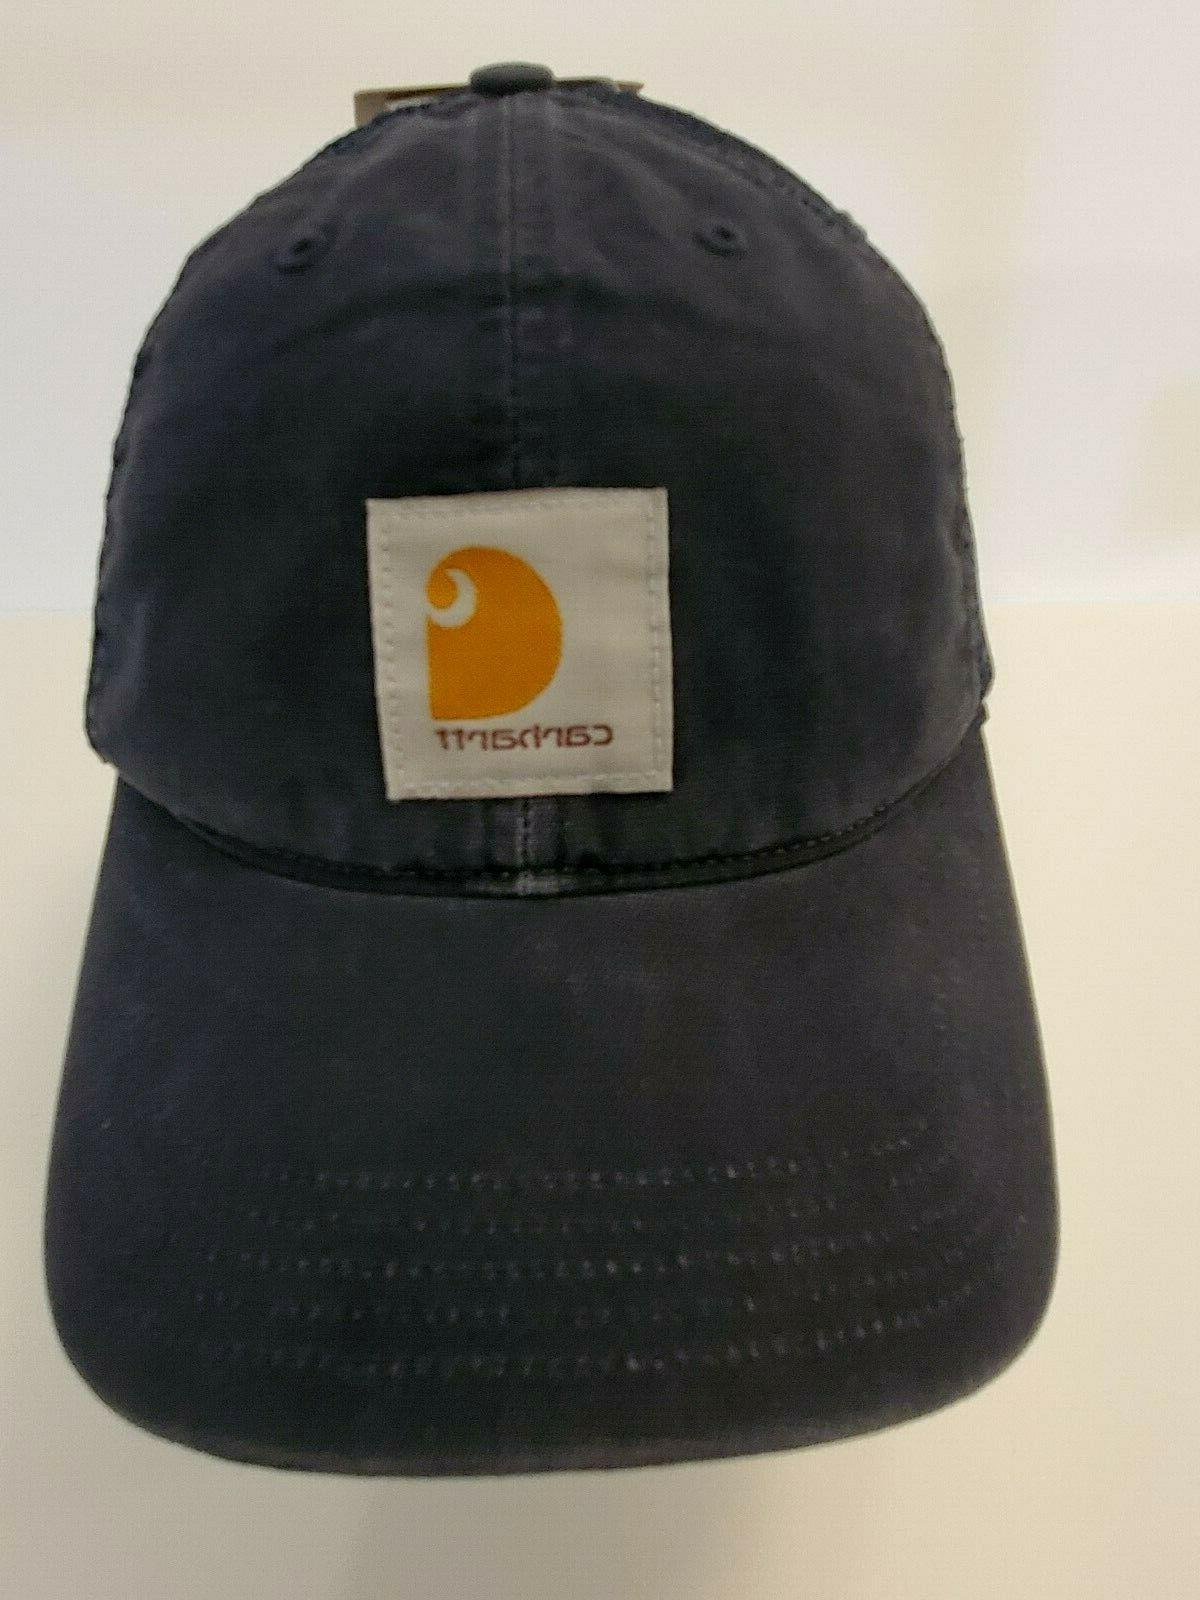 official fitted black trucker hunting work hat